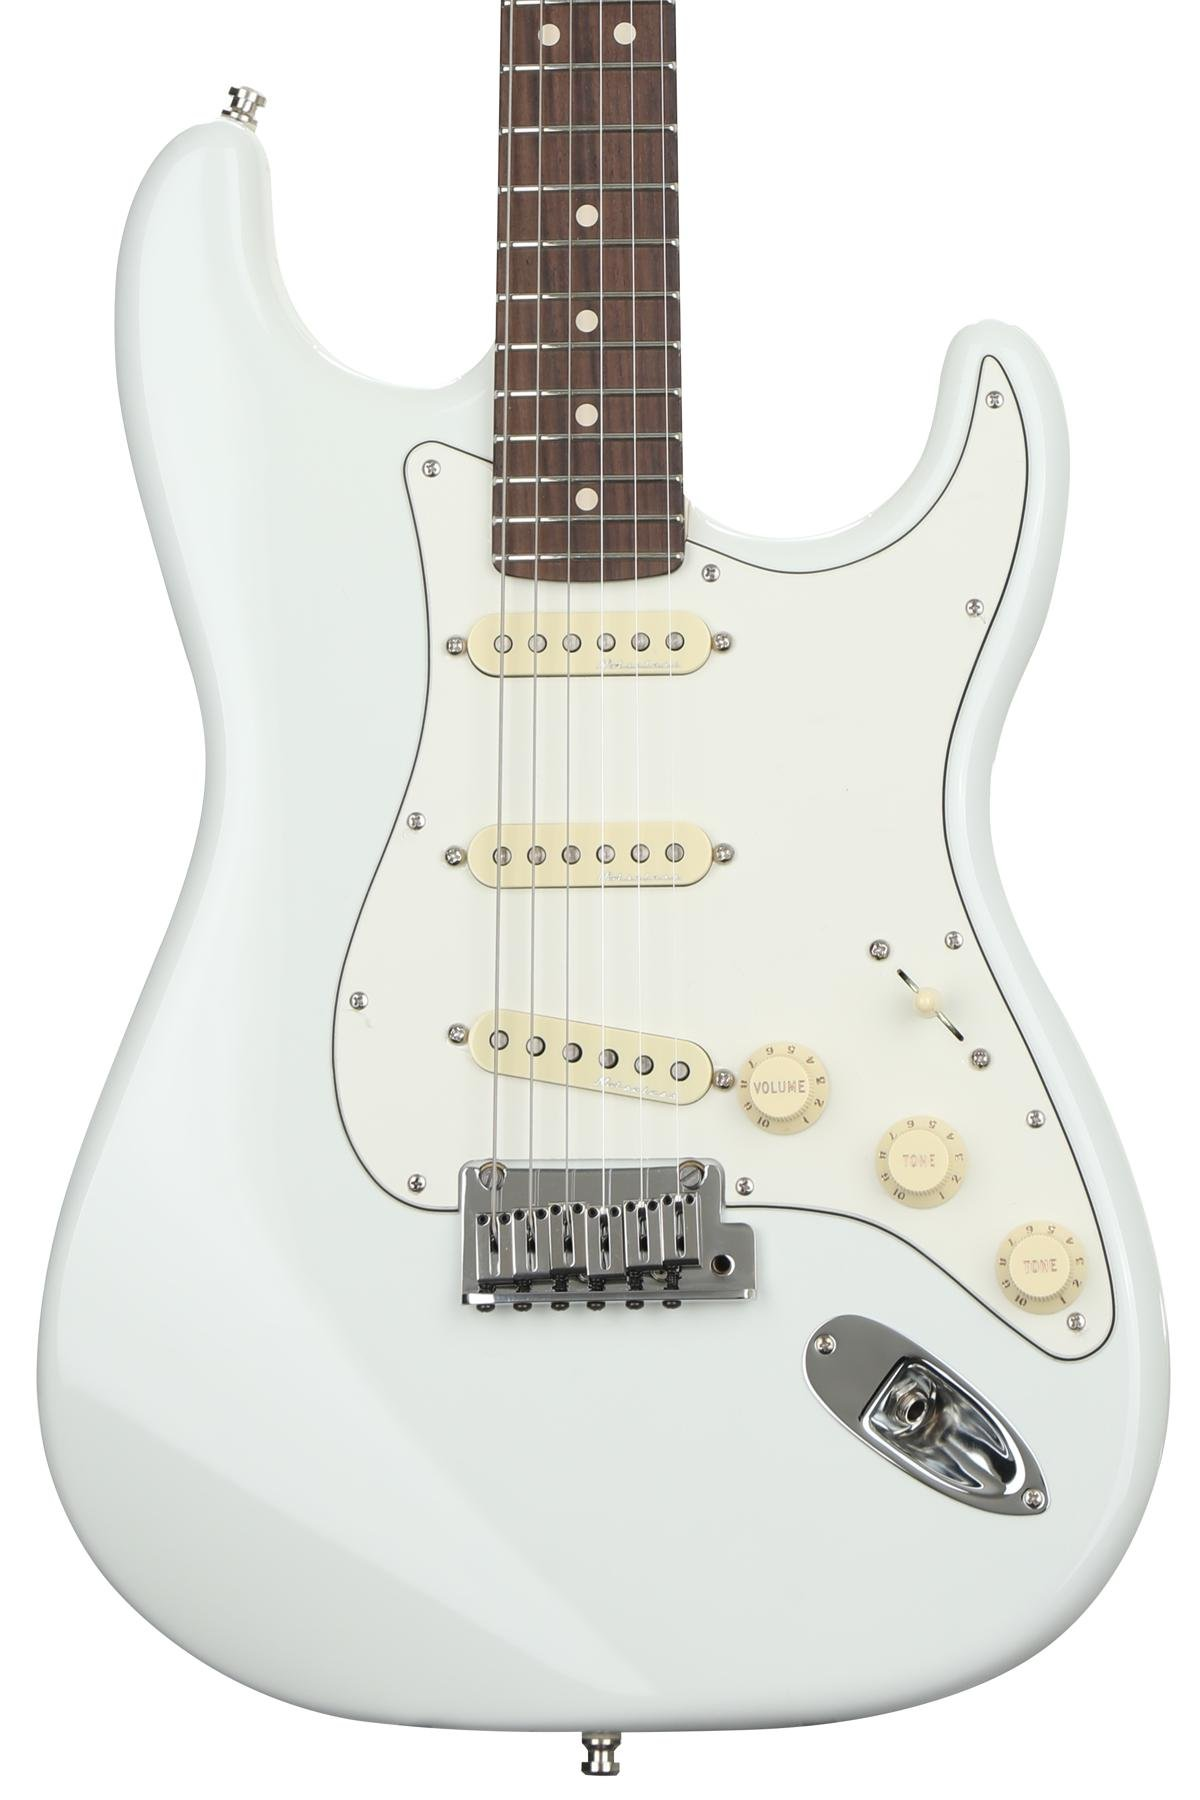 fender jeff beck stratocaster wiring diagram wiring library fender custom shop jeff beck signature stratocaster olympic white image 1